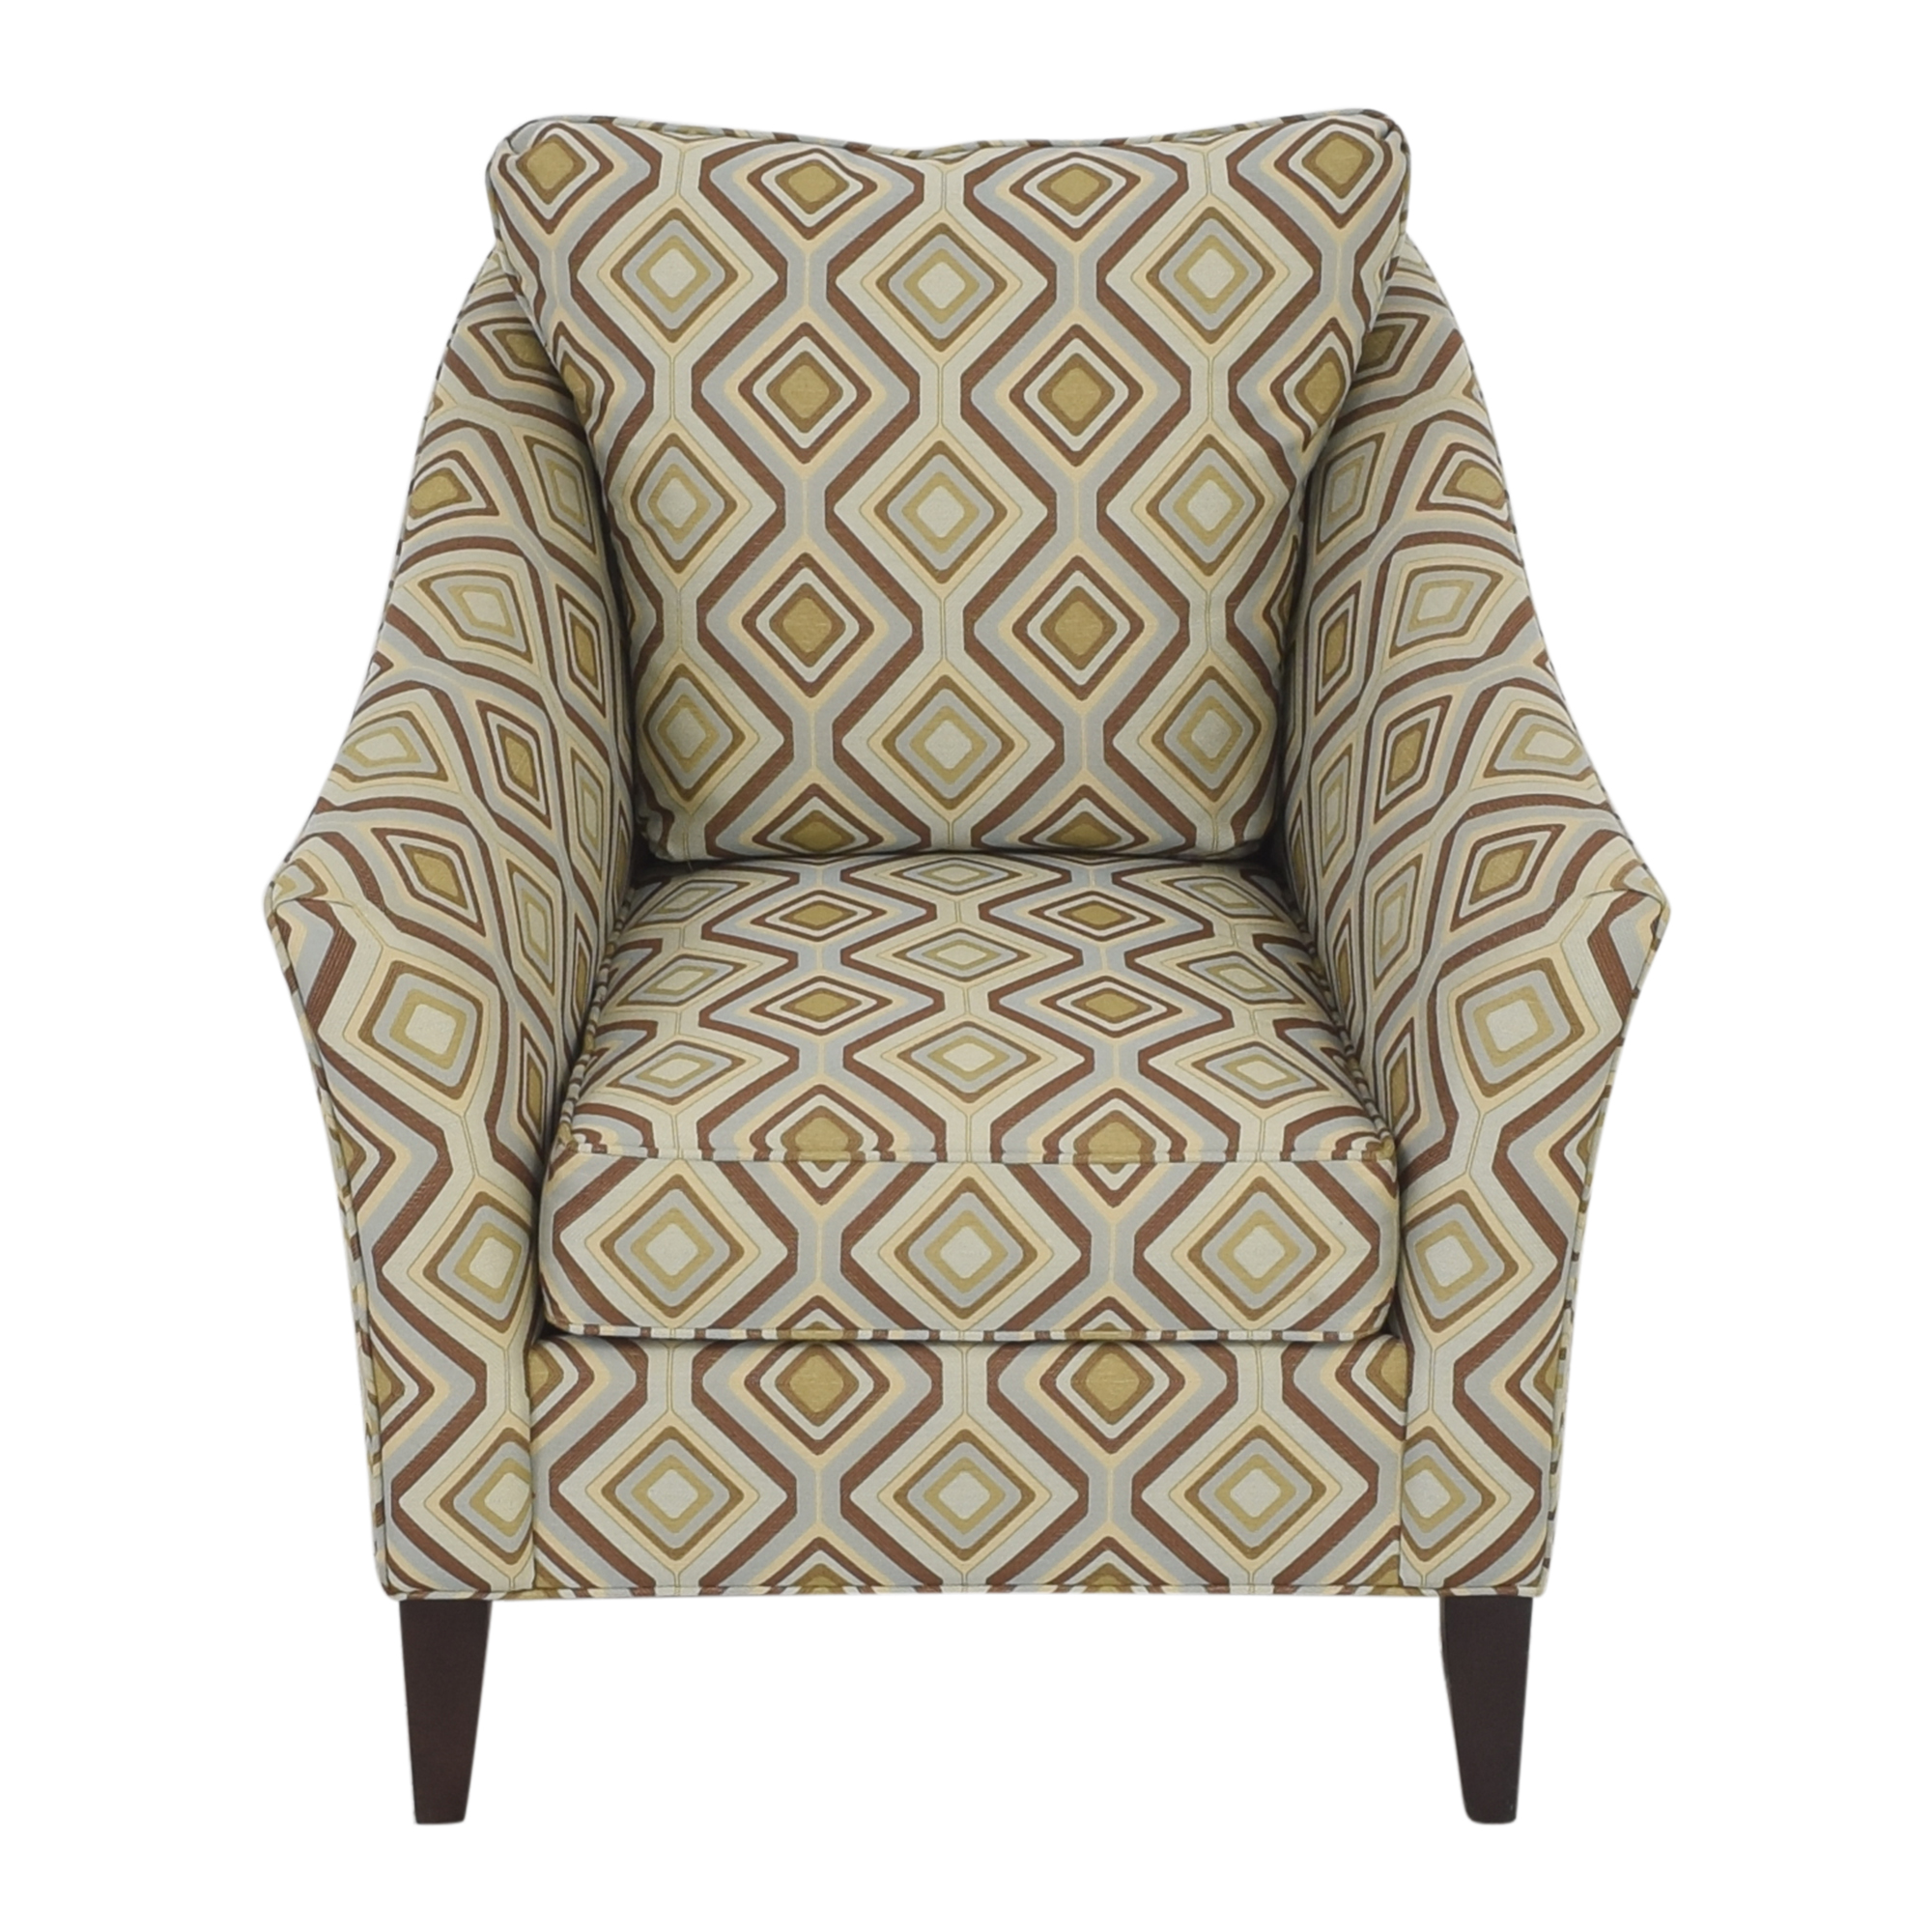 buy Ethan Allen Upholstered Arm Chair Ethan Allen Chairs